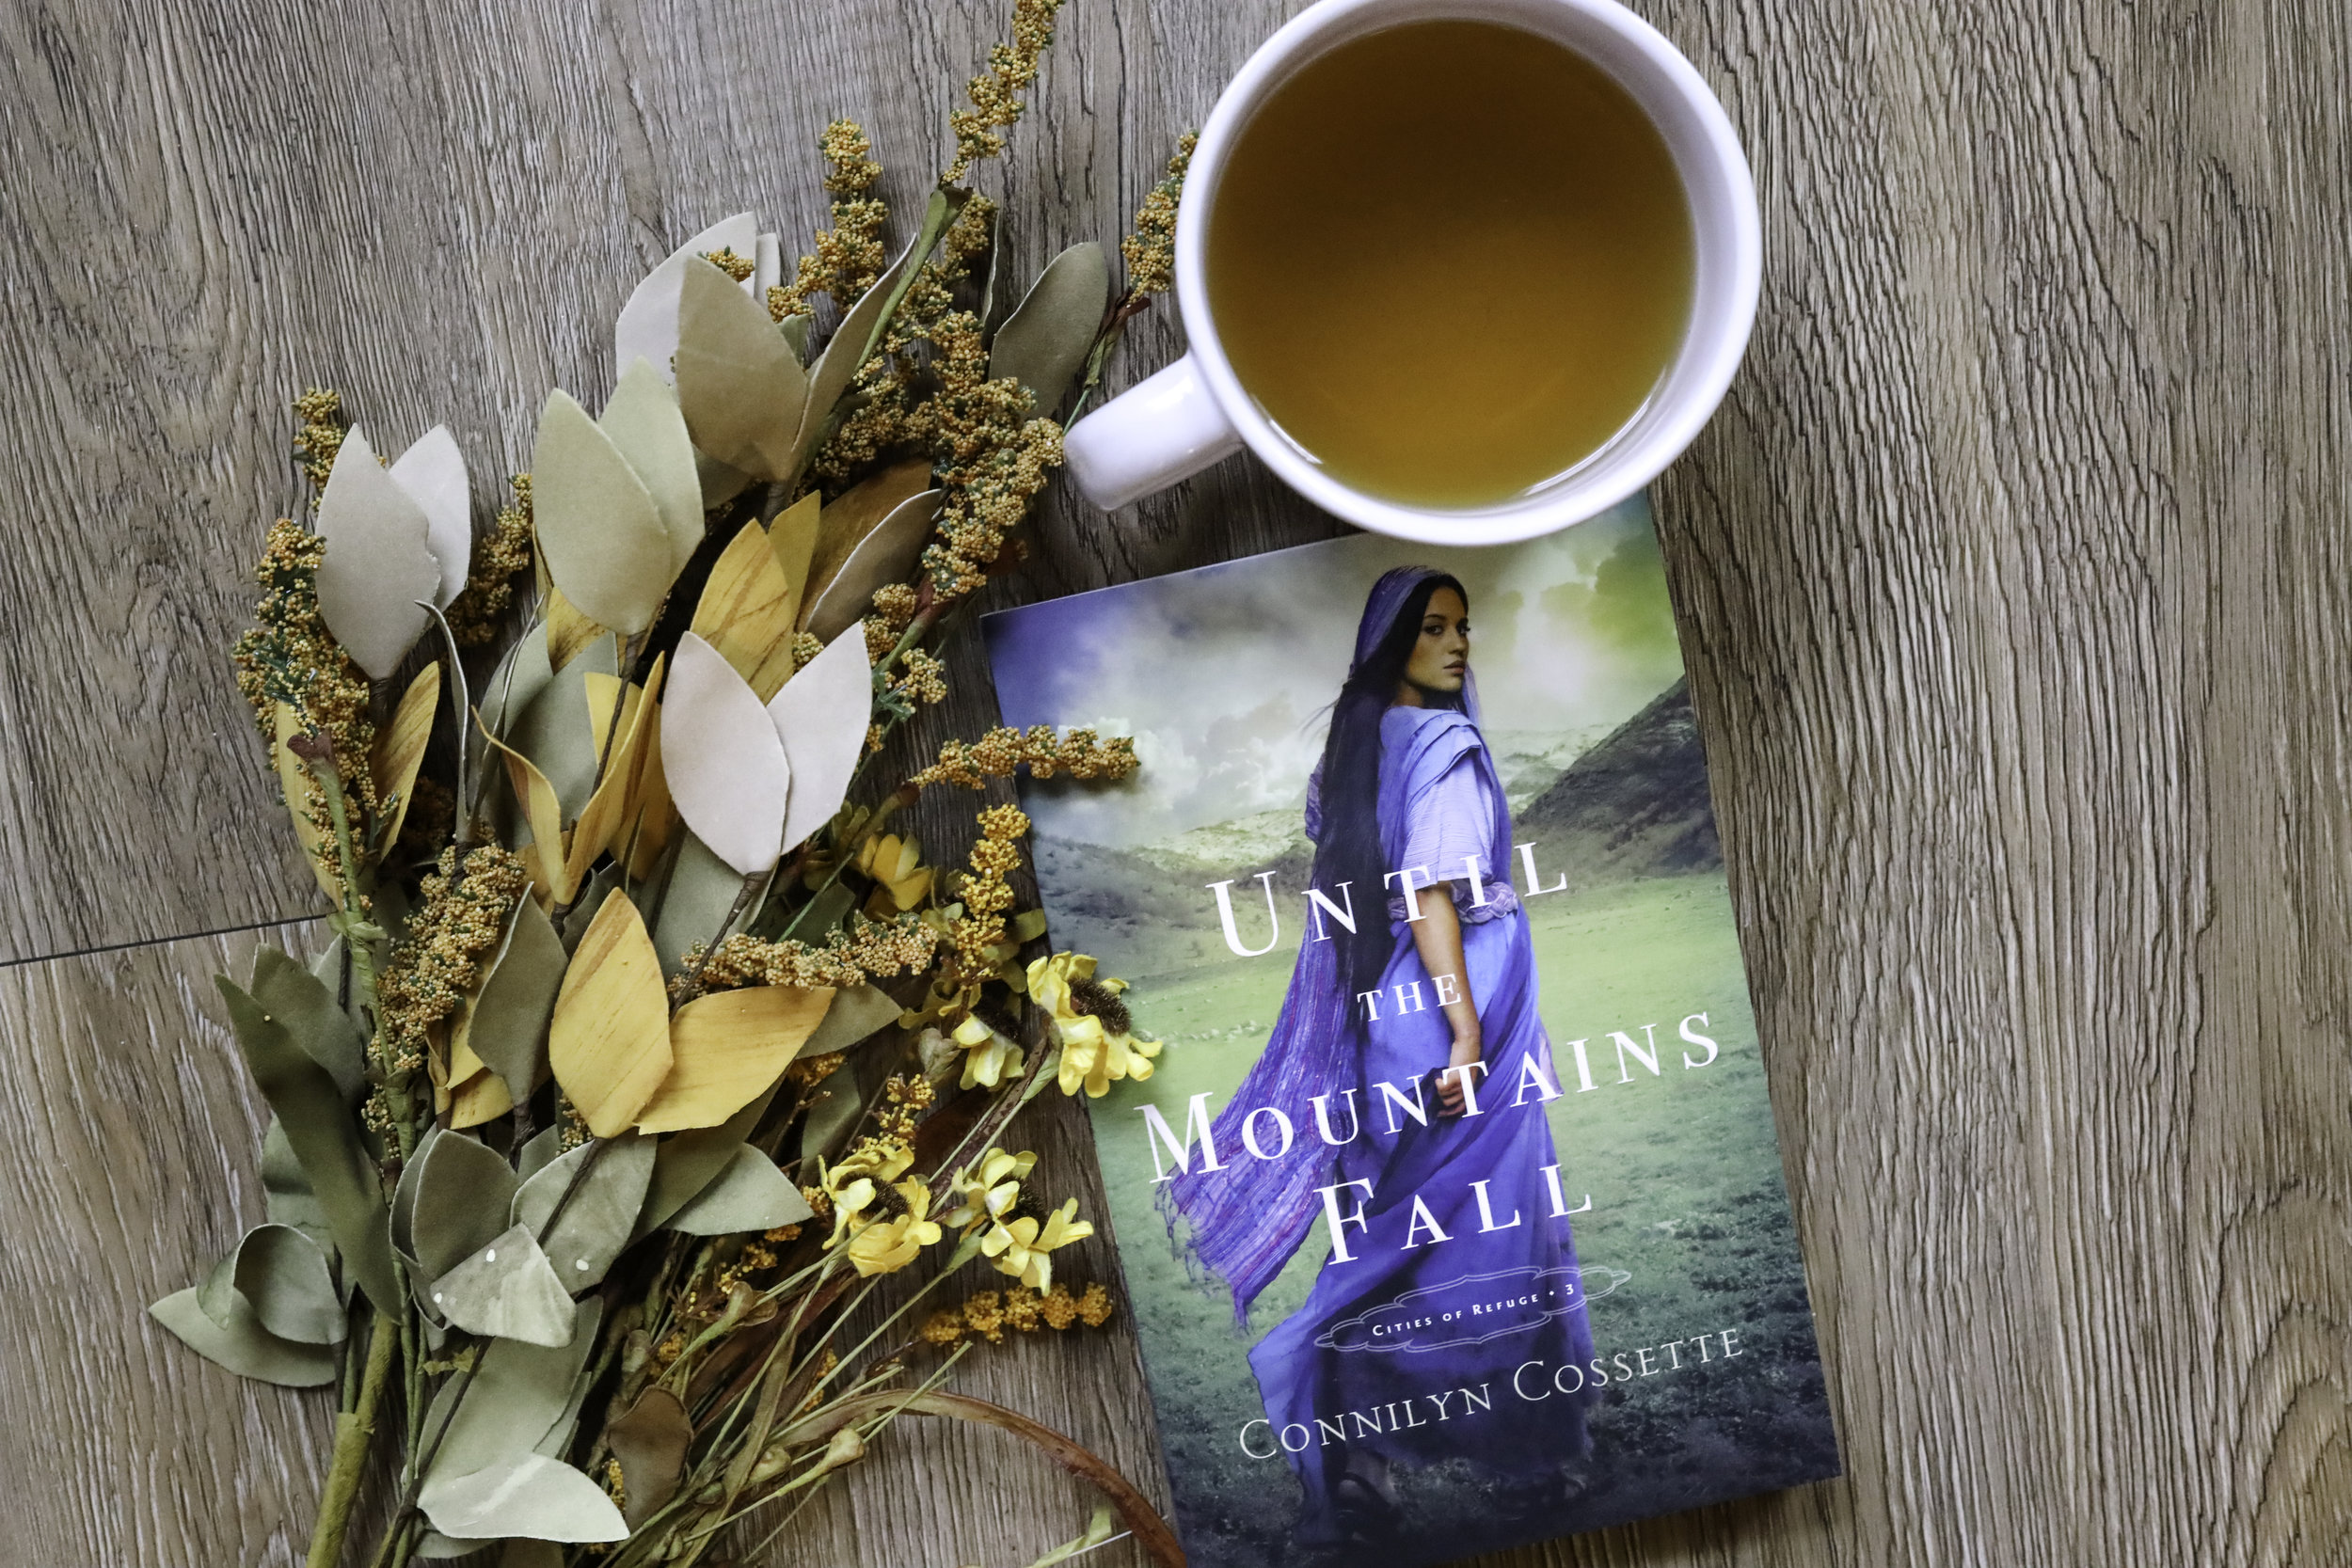 until the mountains fall connilyn cossette book review